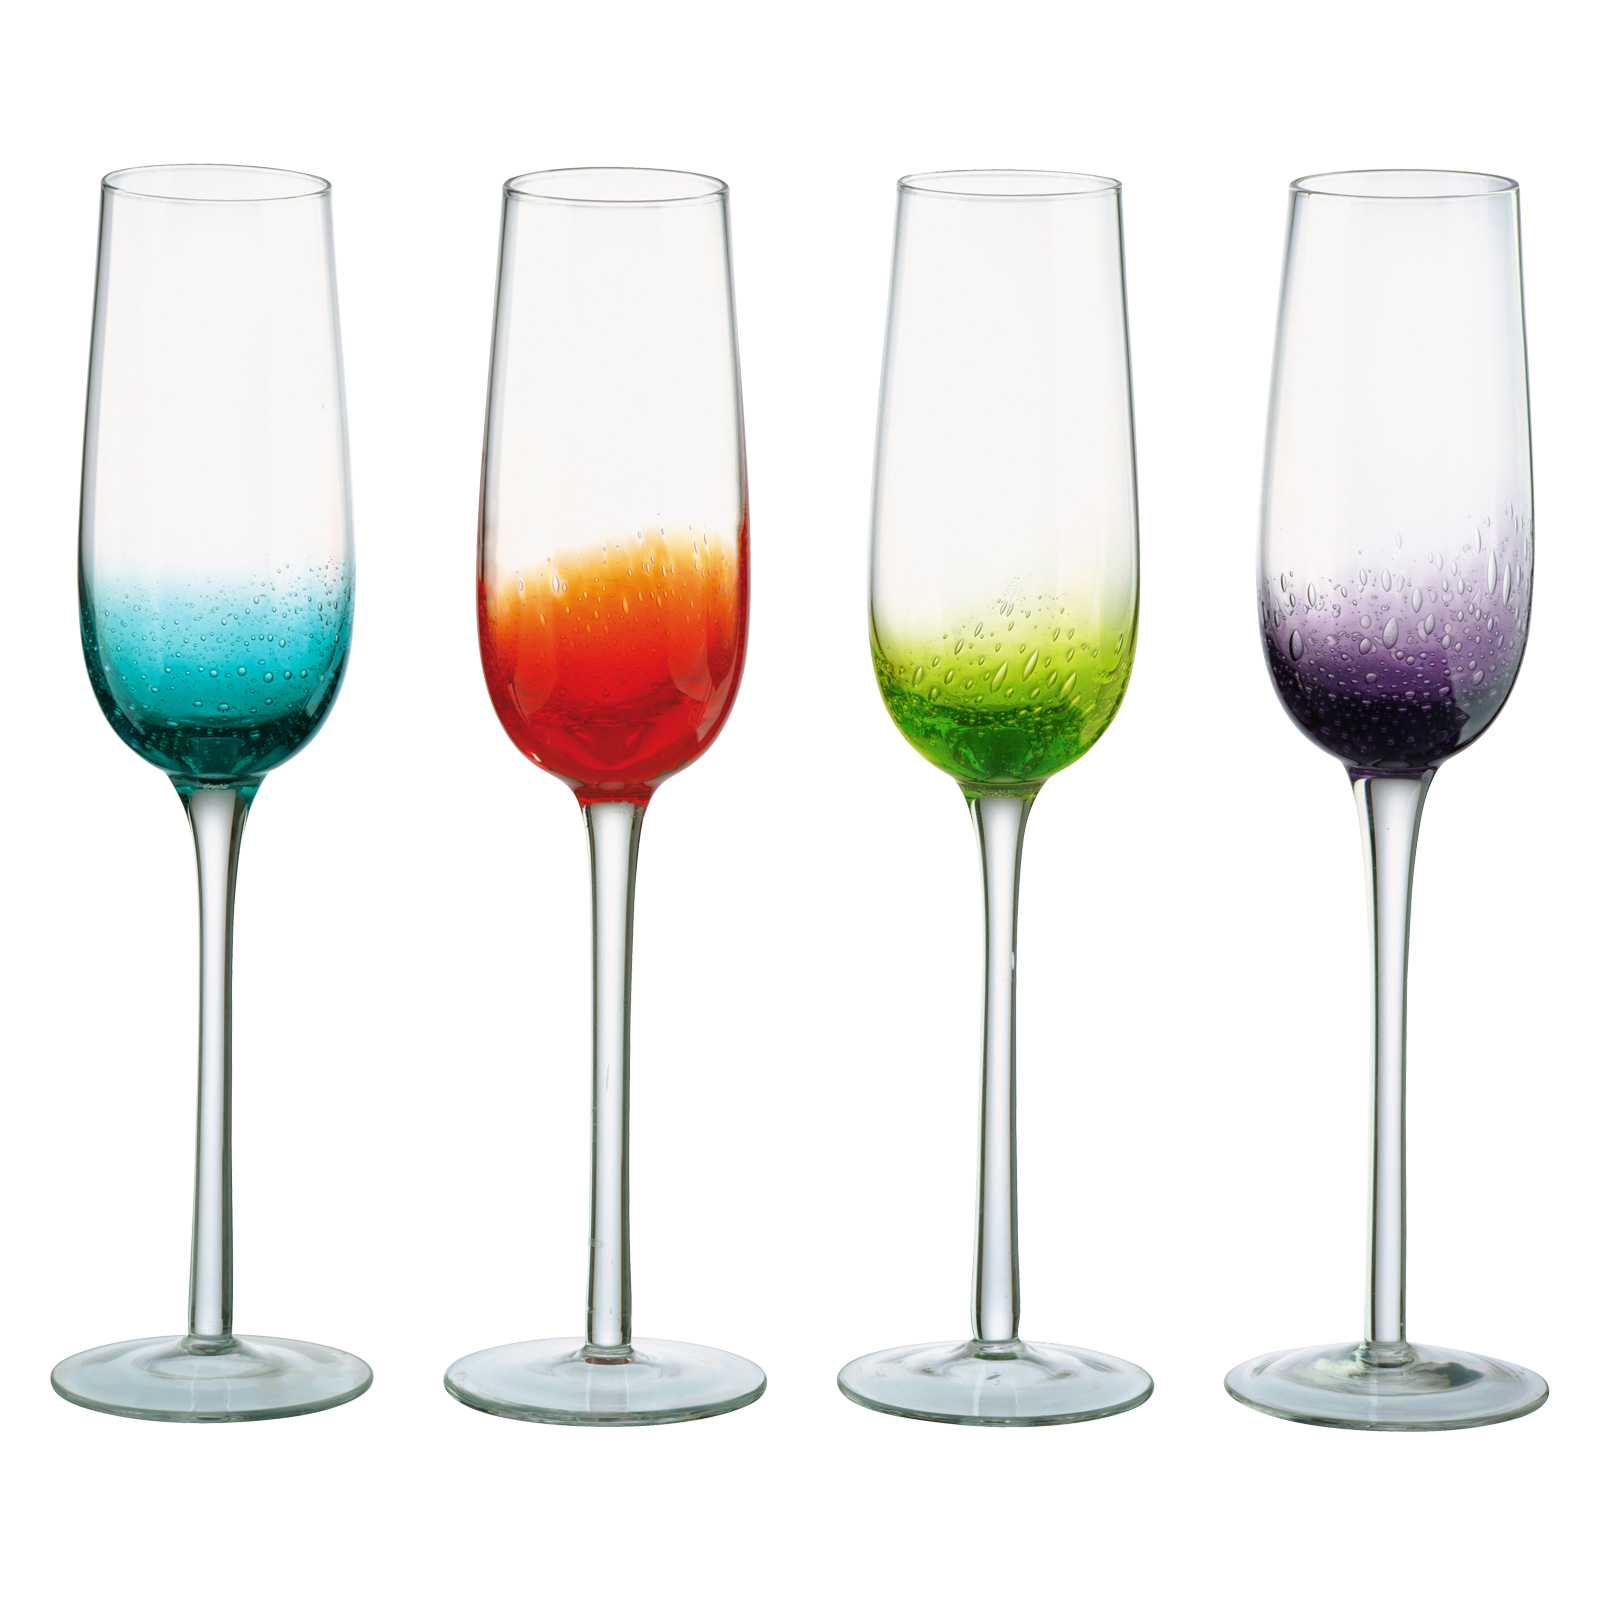 Set of 4 Fizz Champagne Flutes by Anton Studio Designs